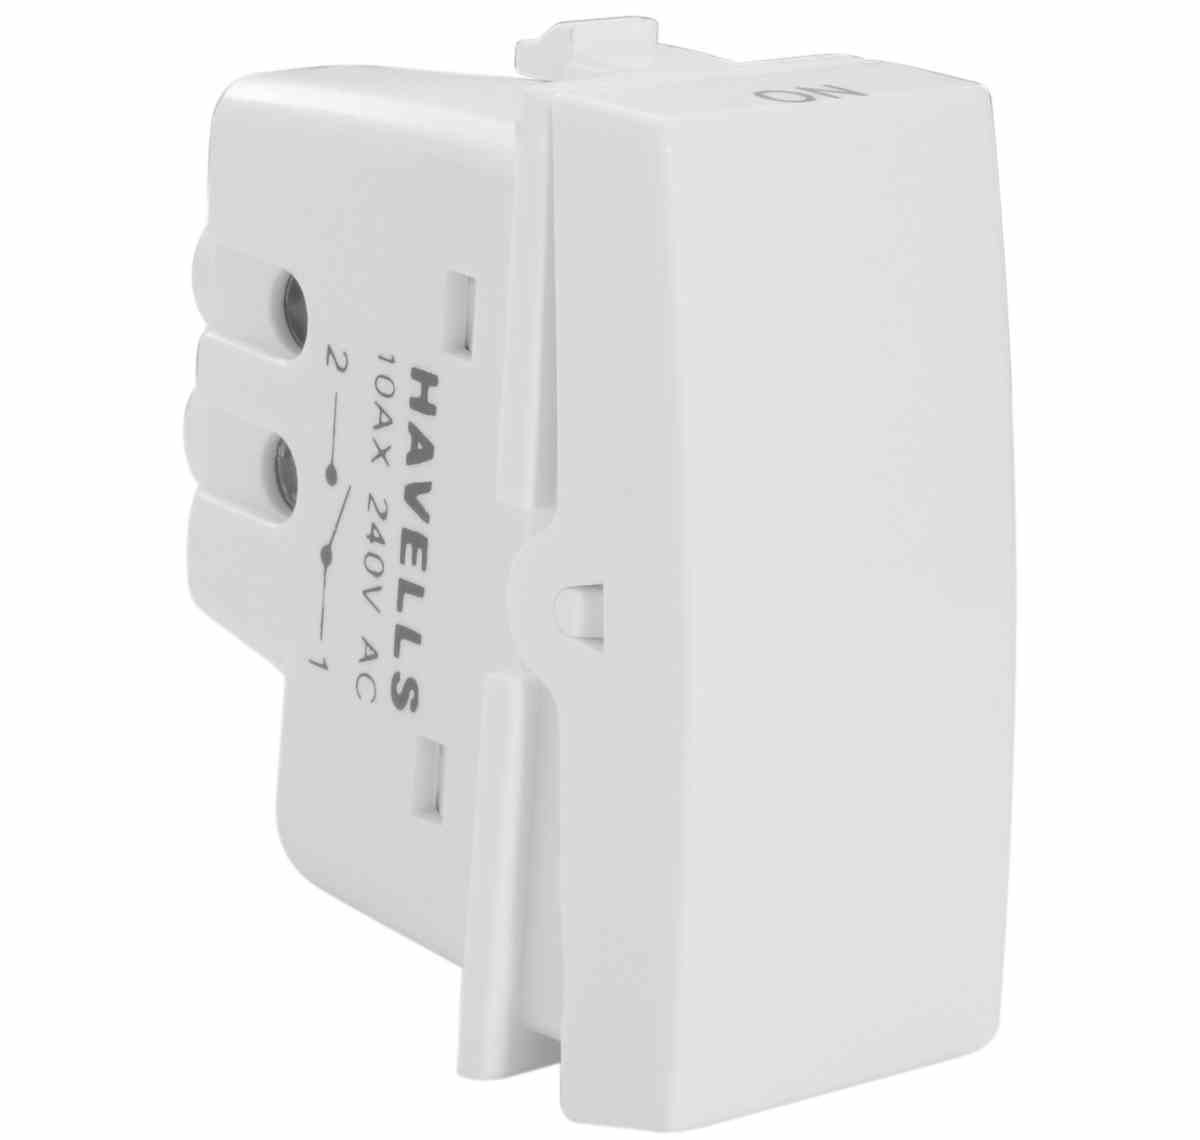 16A 1 Module One Way Switch - Electrical and Networking, Electrical ...